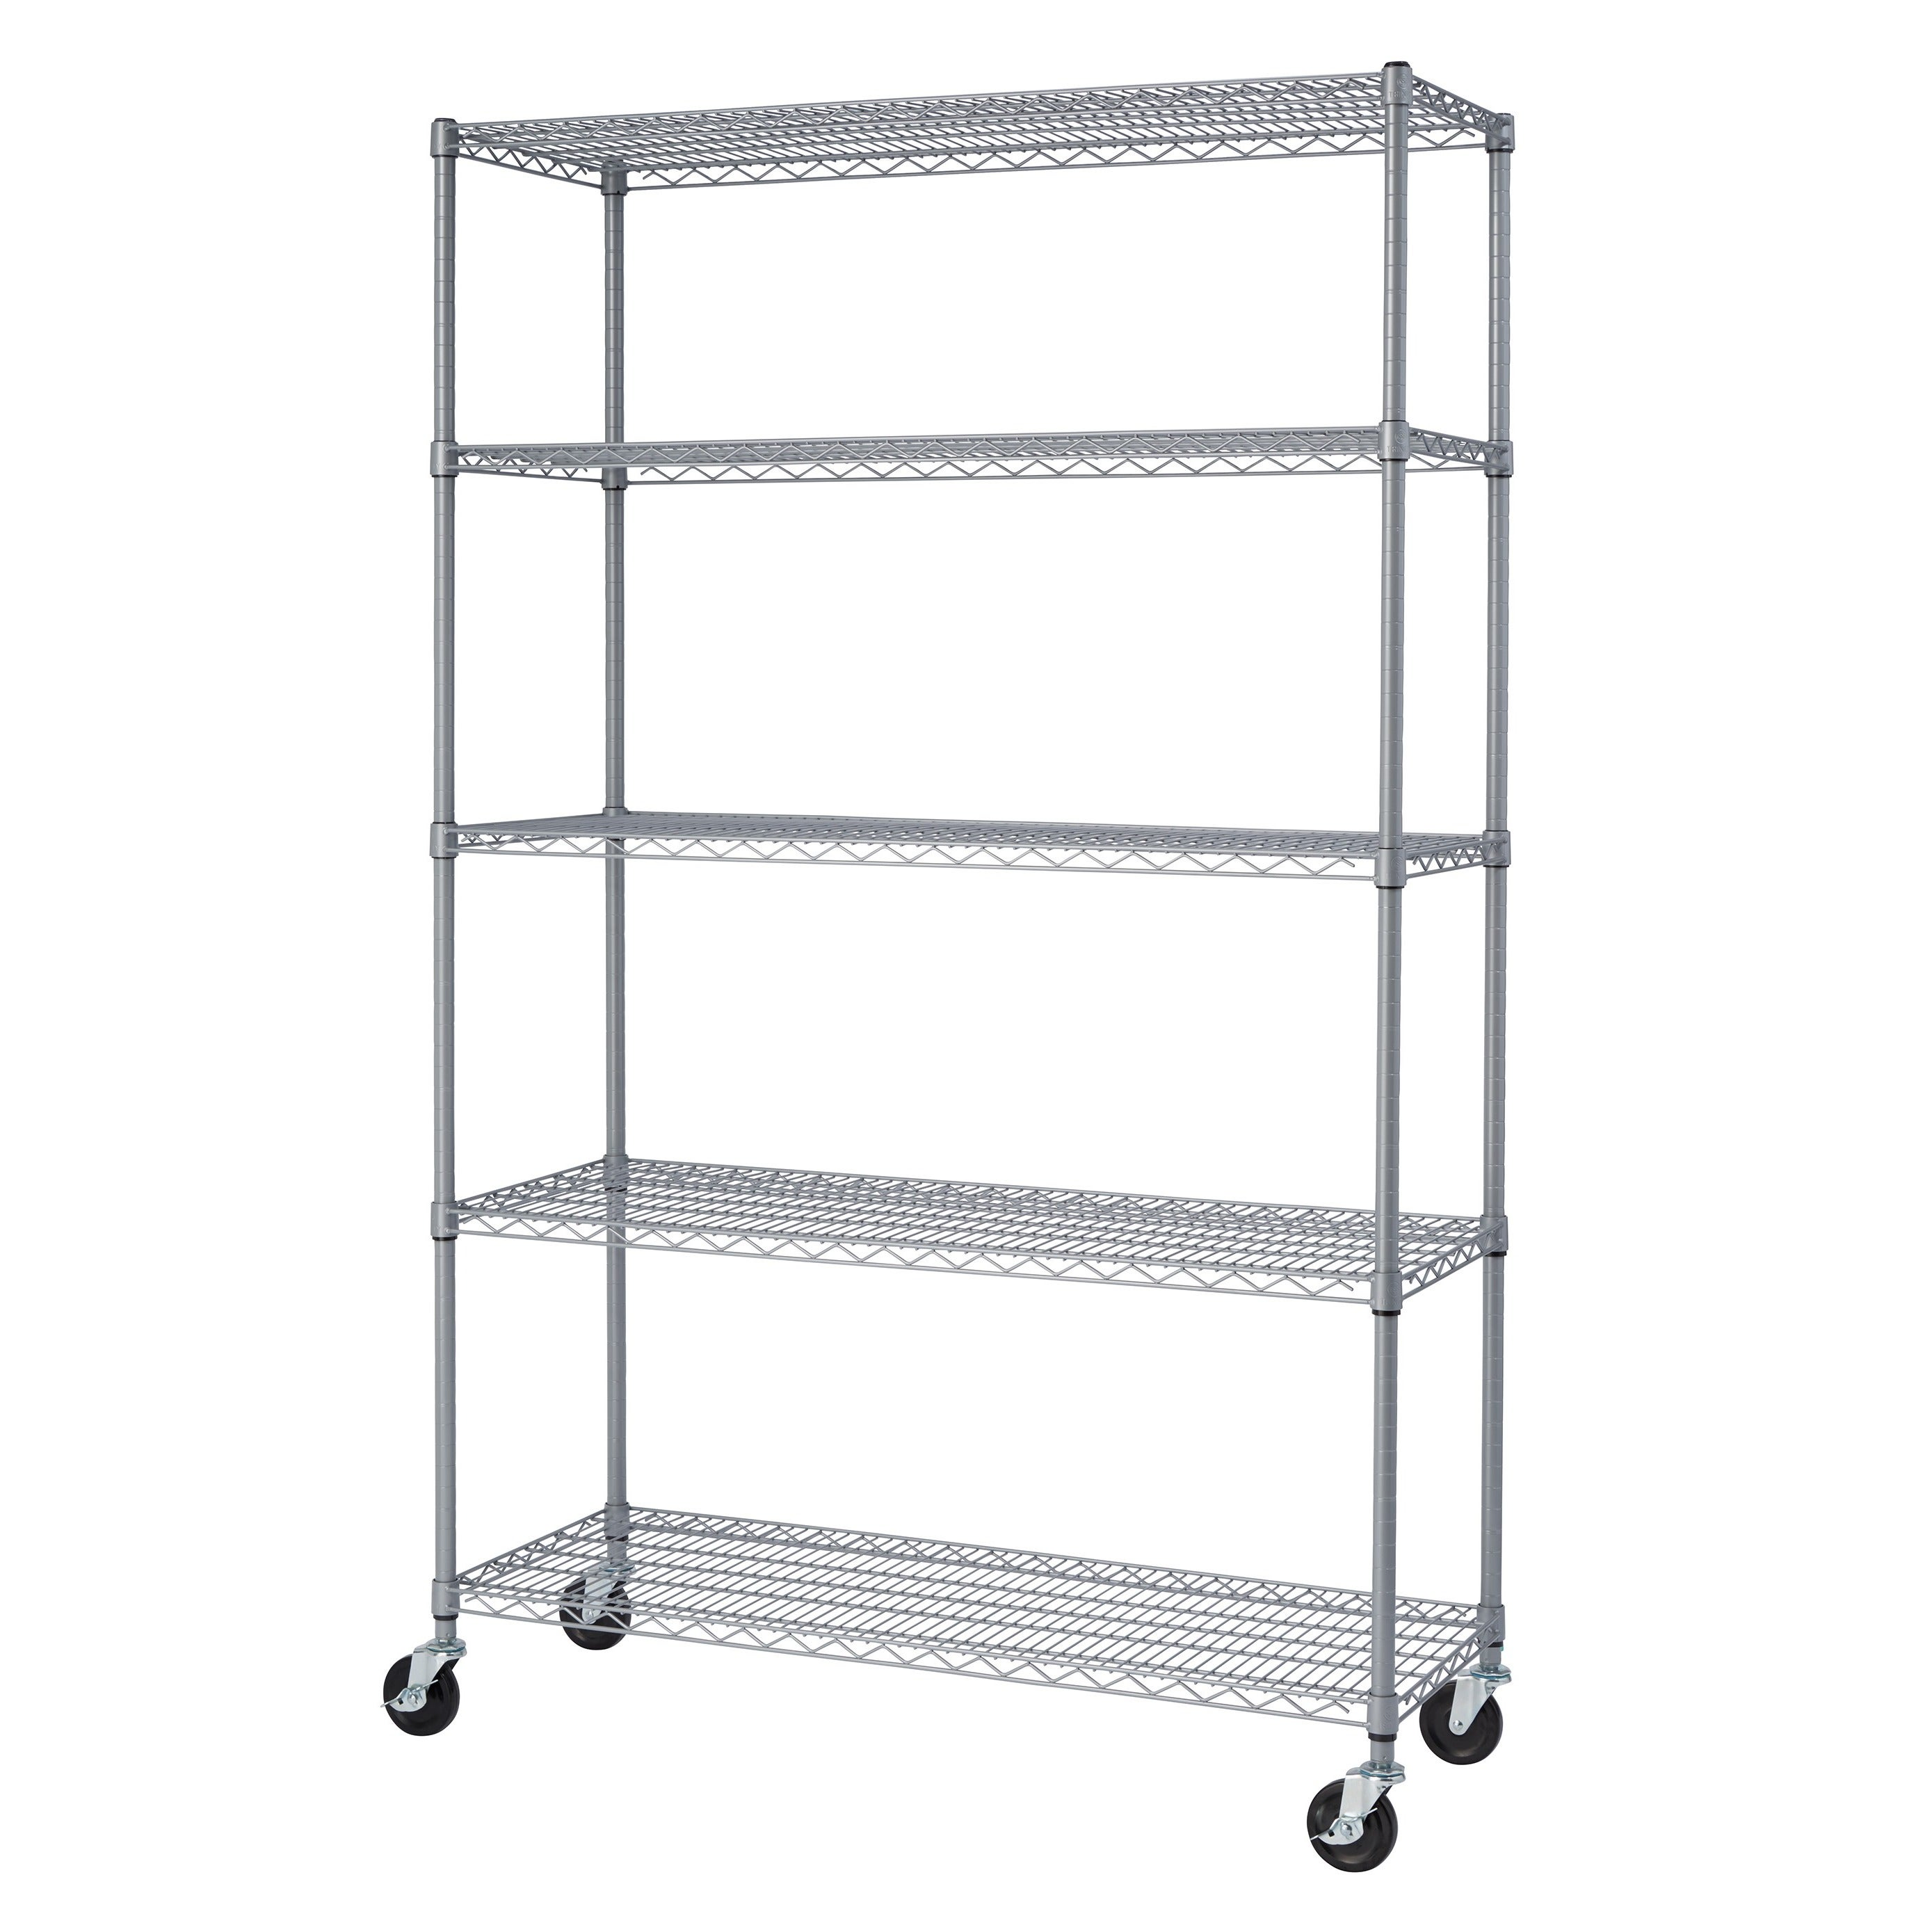 shelf storage inc reviews usa shelving wayfair organization pdx iris rack h unit